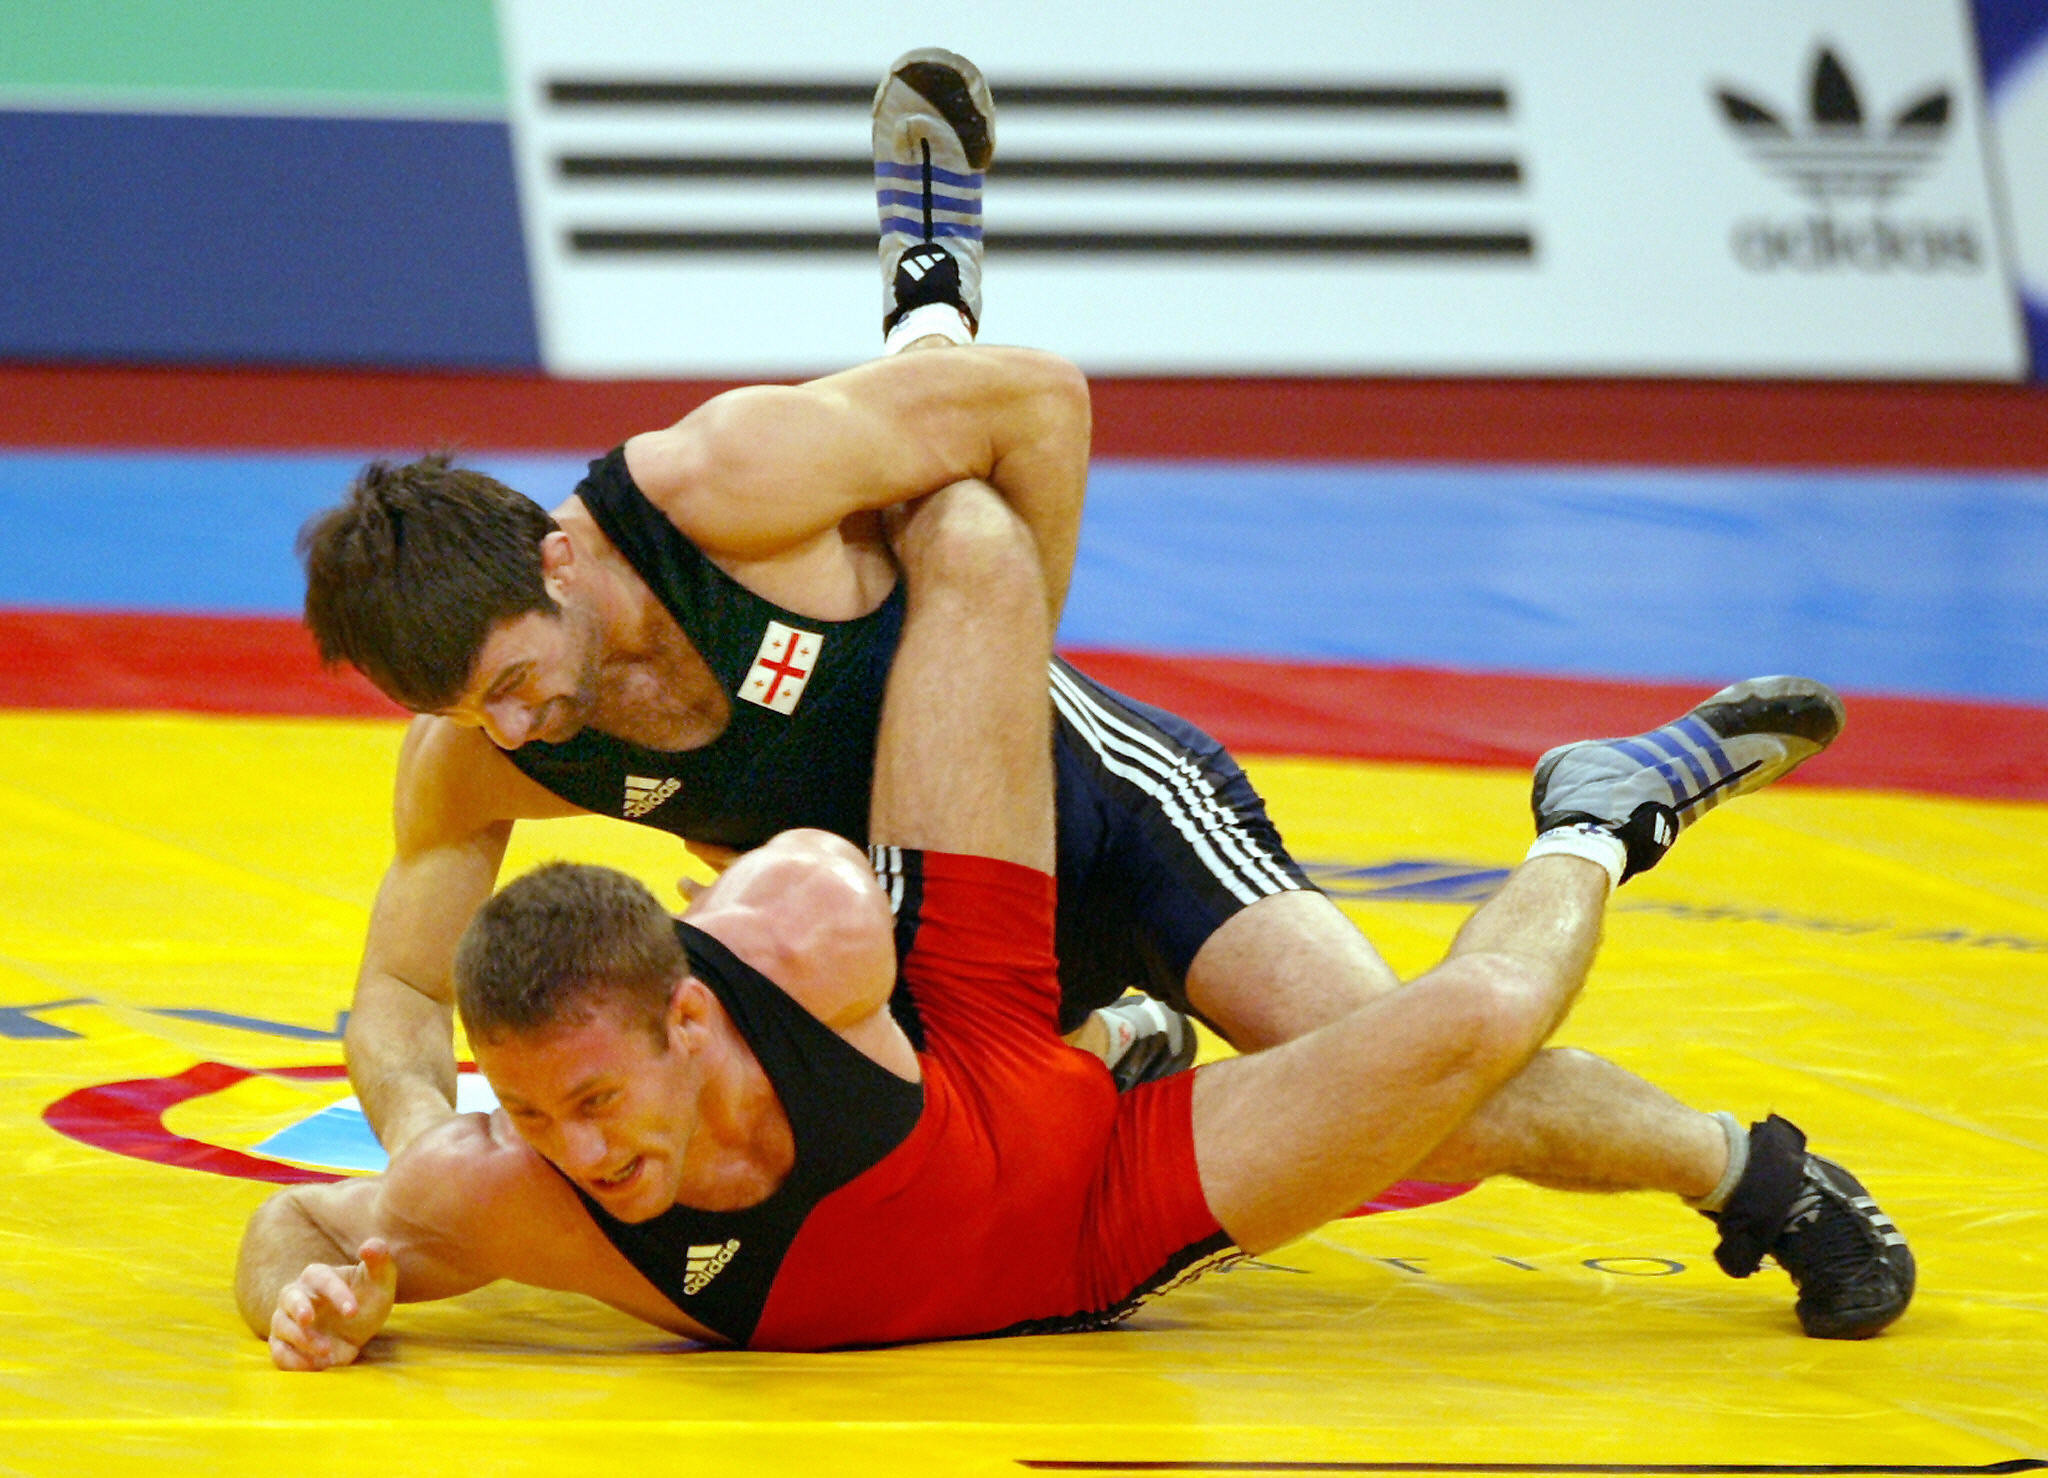 Gergő Wöller, in red, was one of five Hungarian wrestlers honoured with special awards at the Wrestling World Championships today to mark Republic Day ©Getty Images